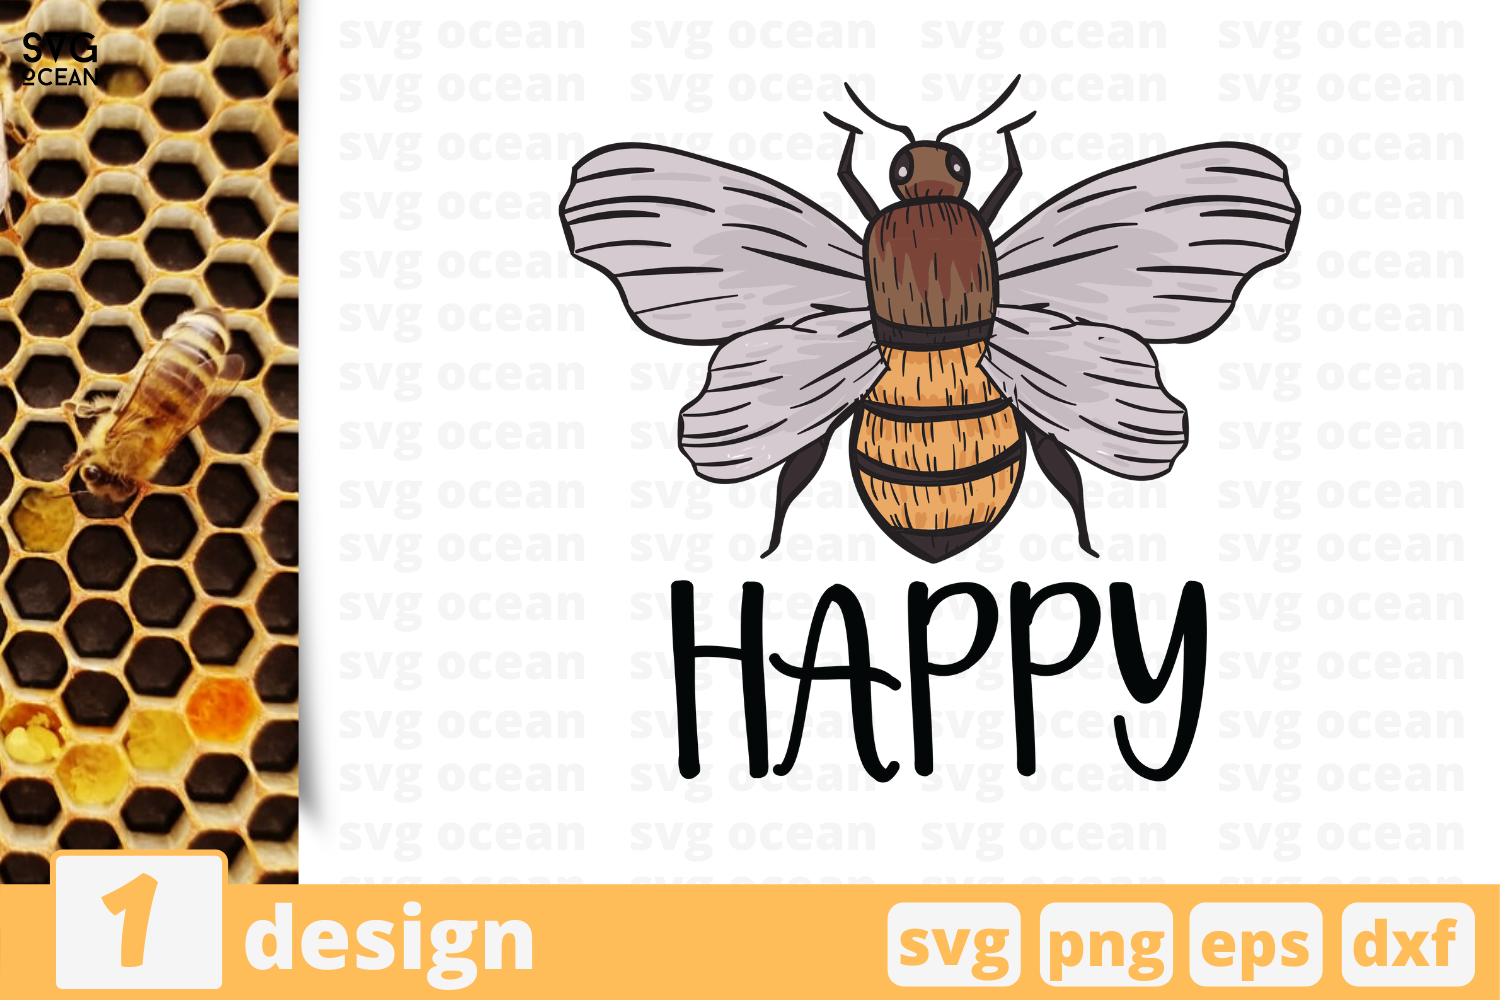 Download Free Happy Bee Graphic By Svgocean Creative Fabrica for Cricut Explore, Silhouette and other cutting machines.